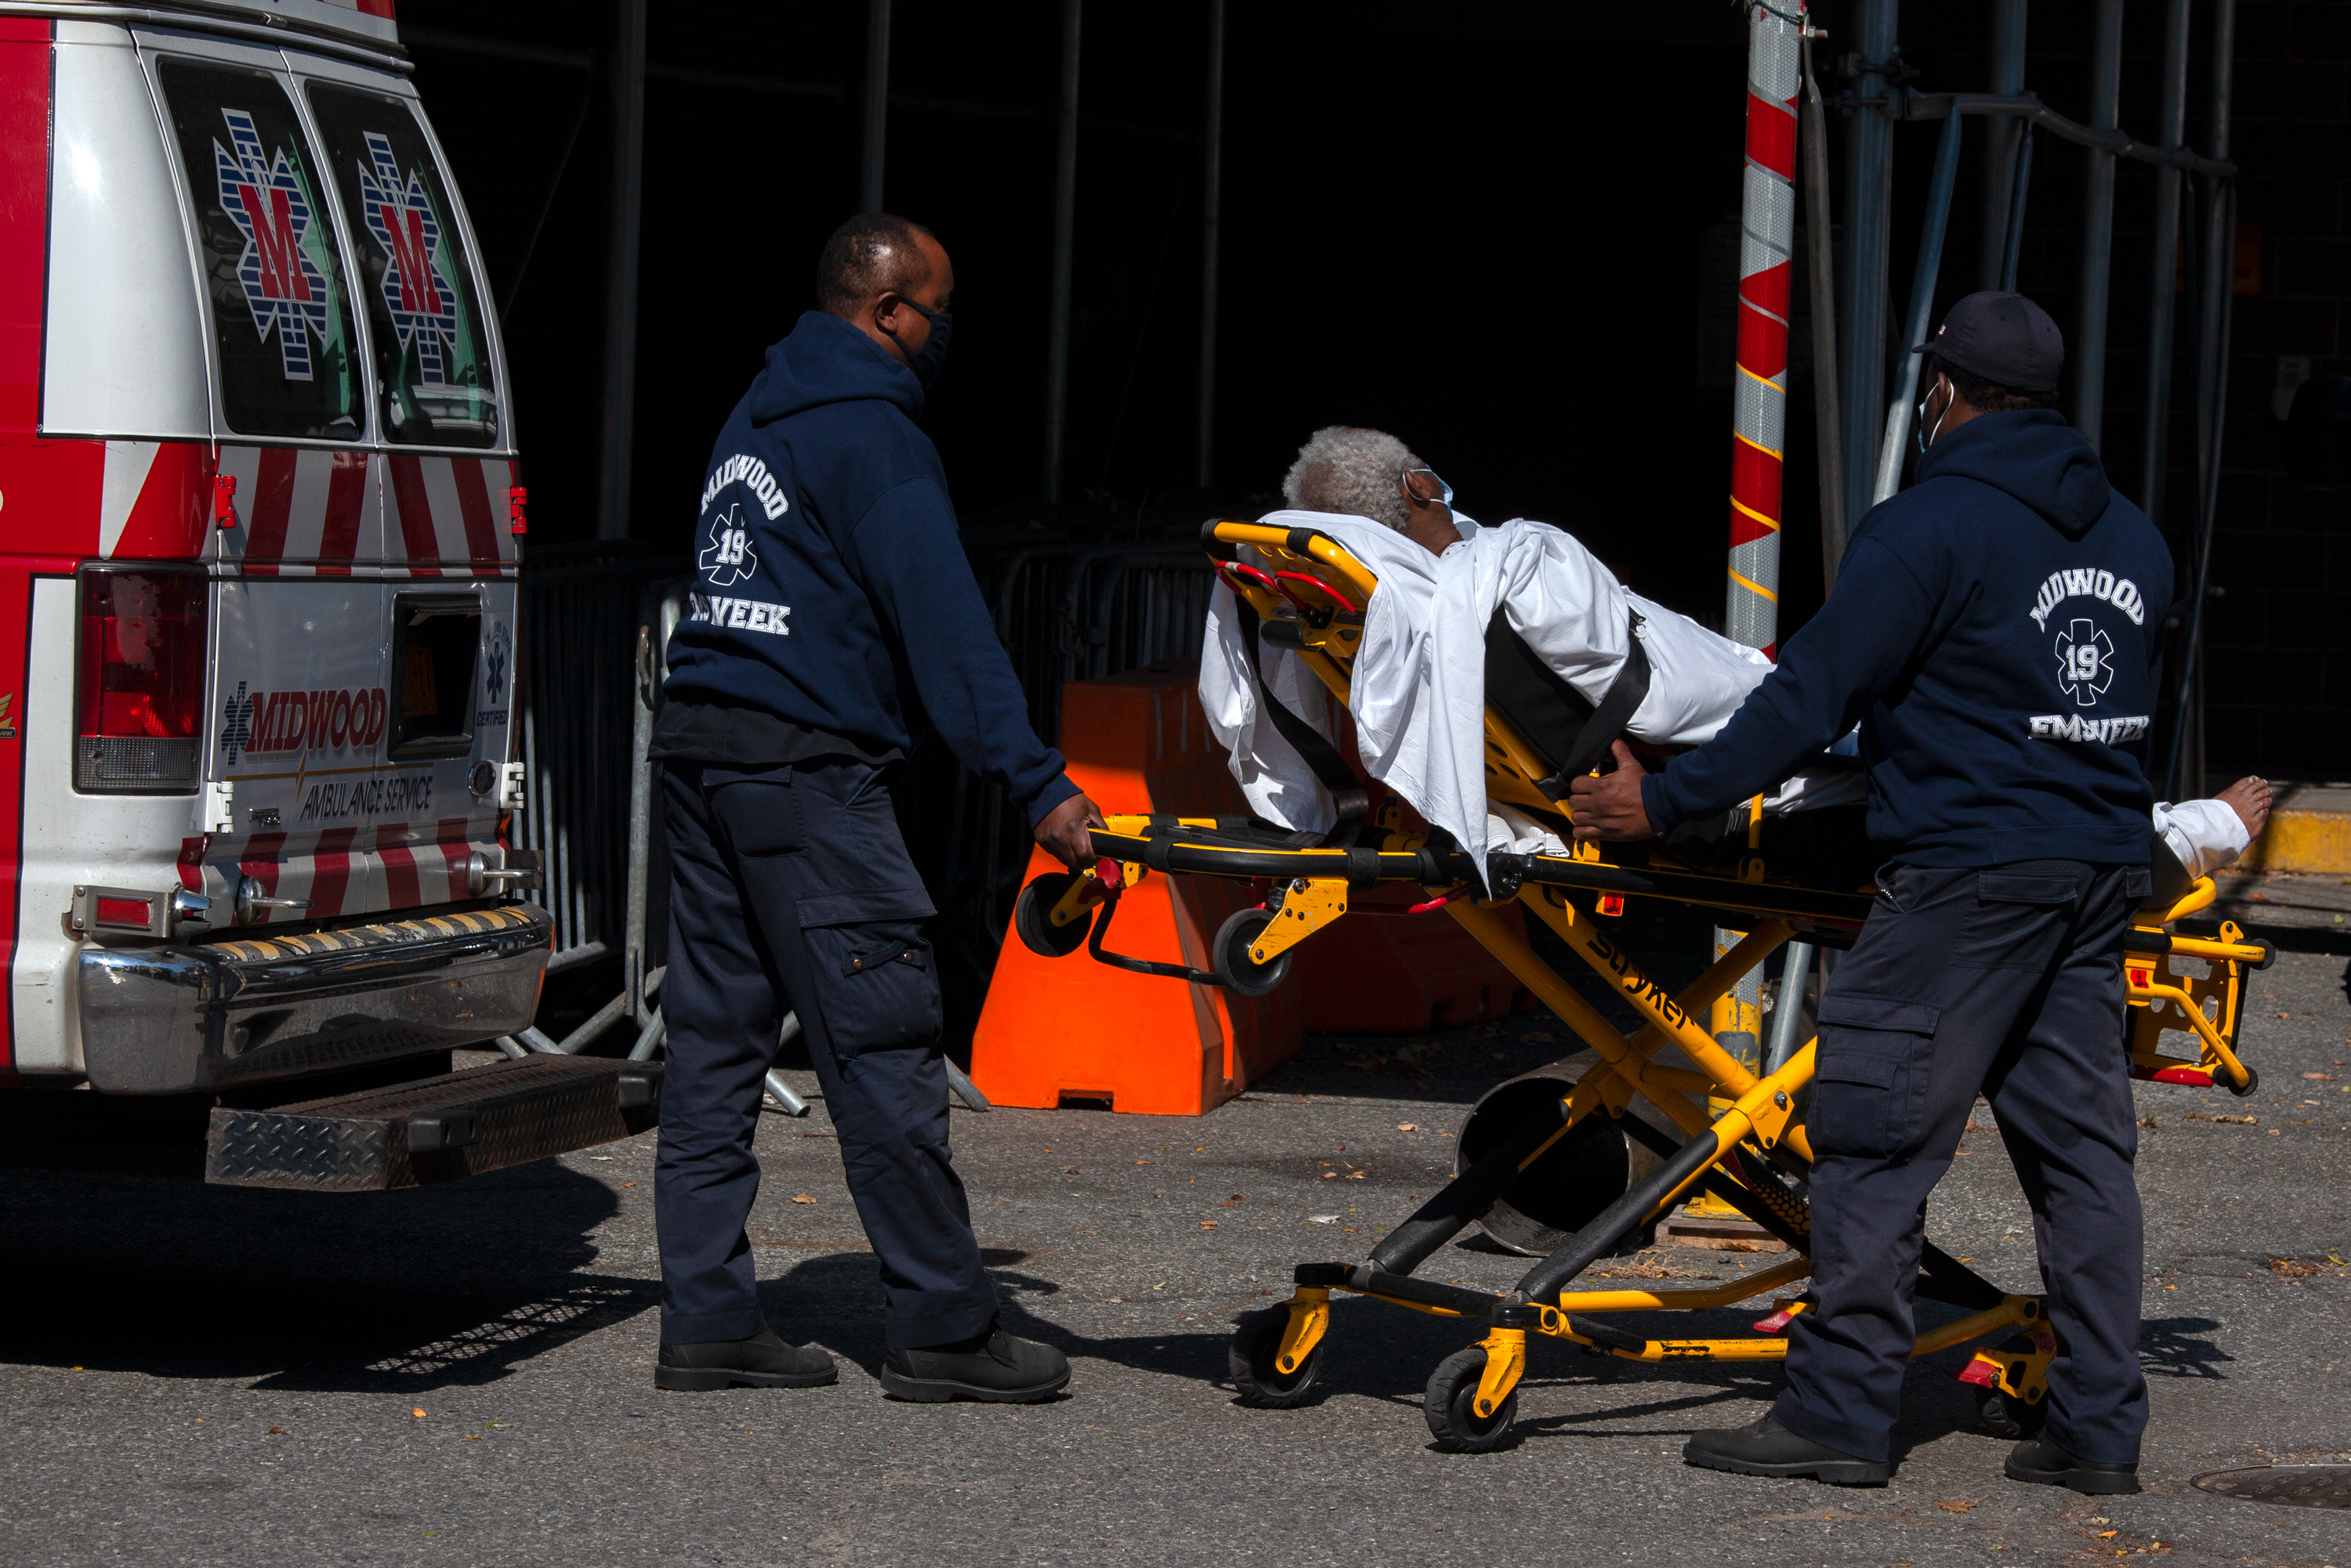 Midwood Emergency responders bring a patient to Brooklyn Hospital Center, Oct. 7, 2020.